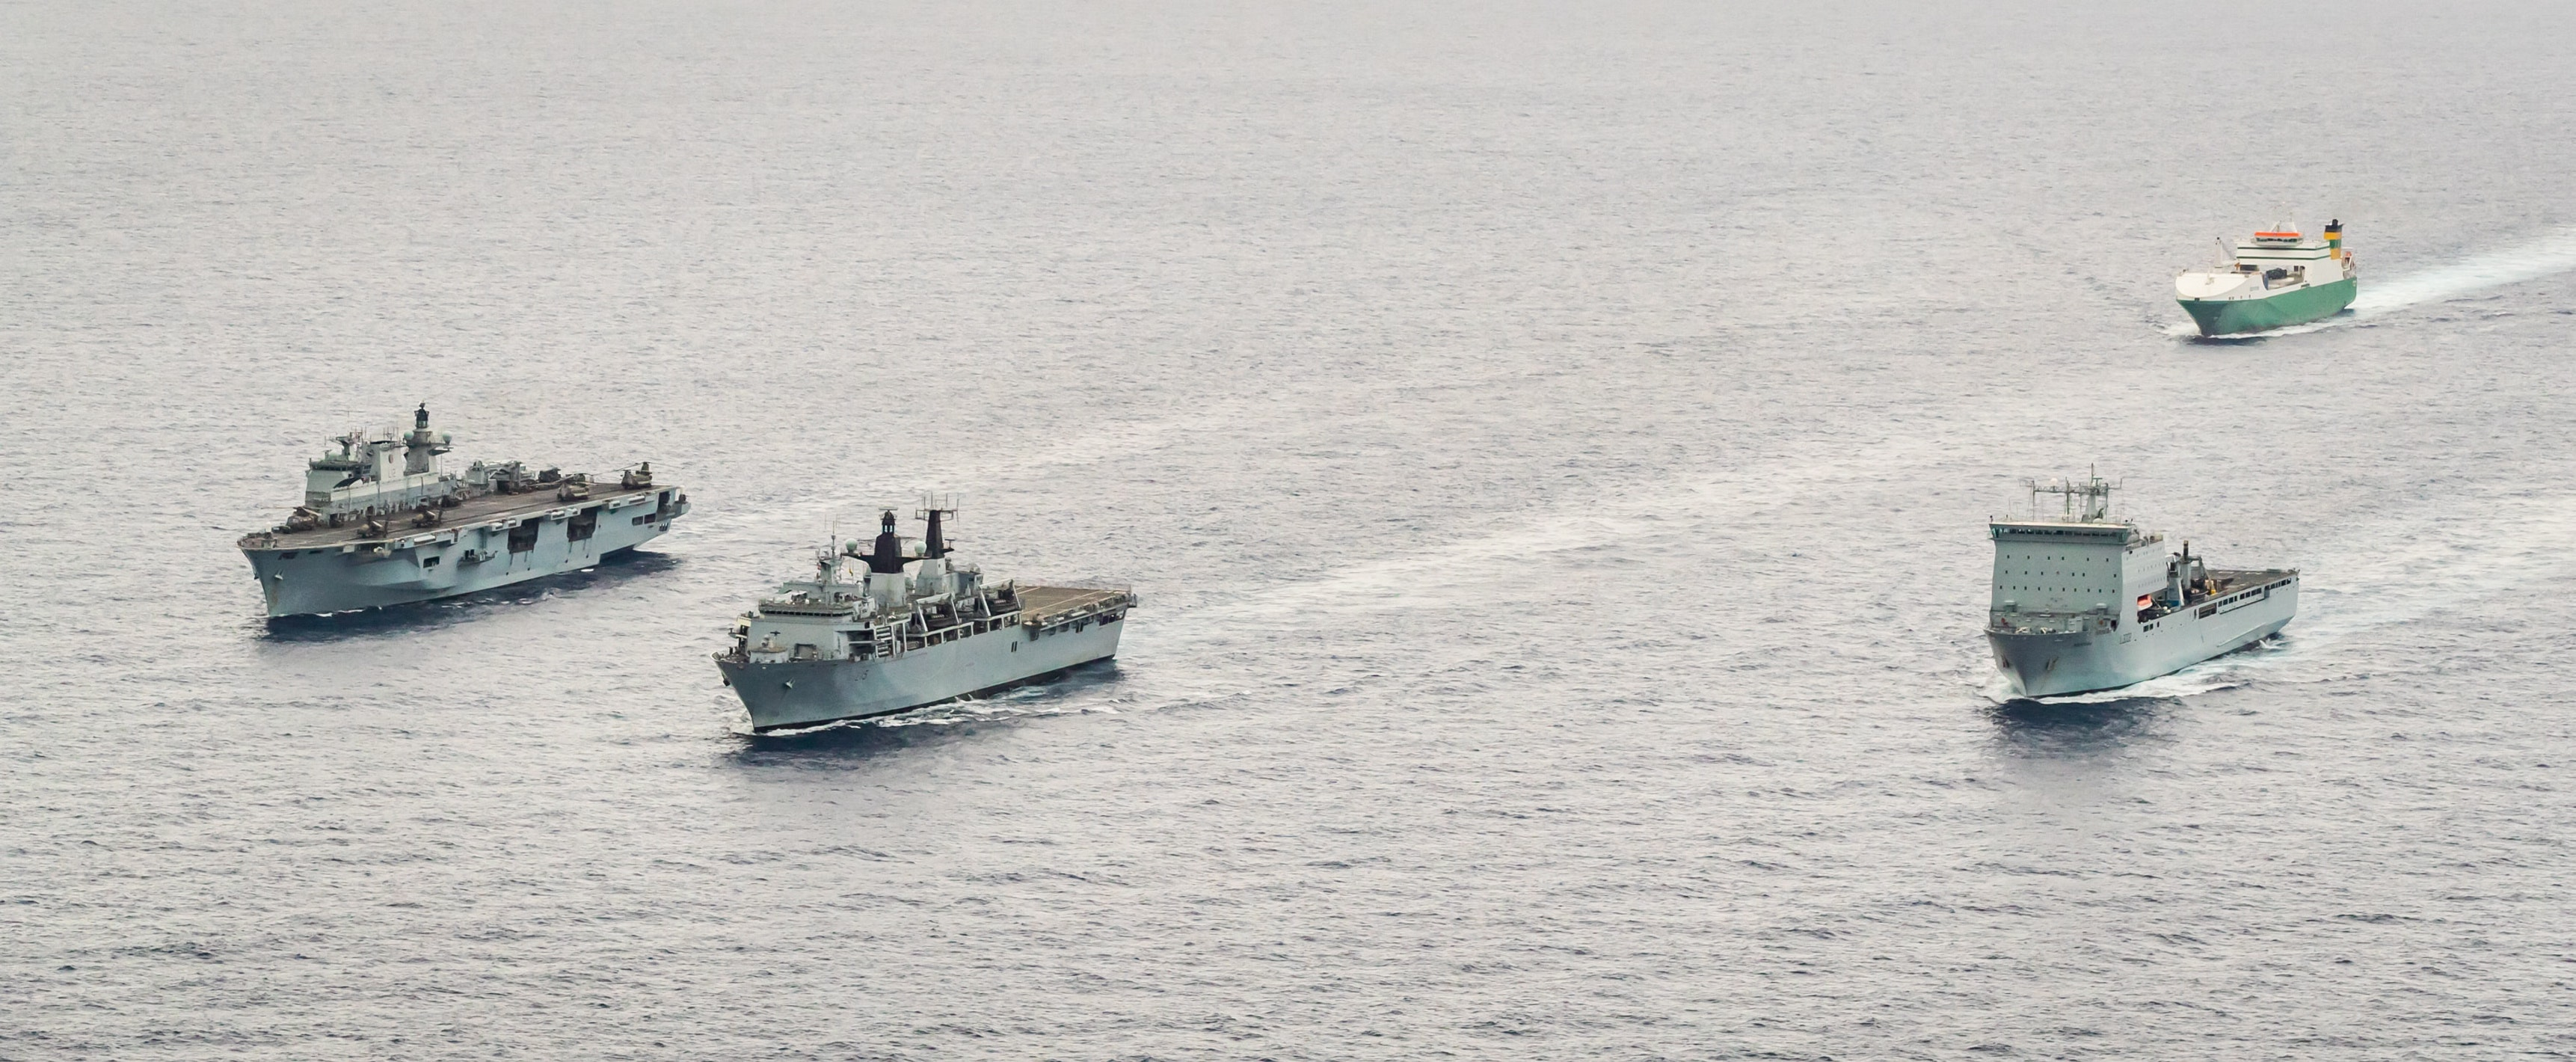 Sailors and Royal Marines have been in action on land, in the air and at sea, during a joint exercise with Albania.